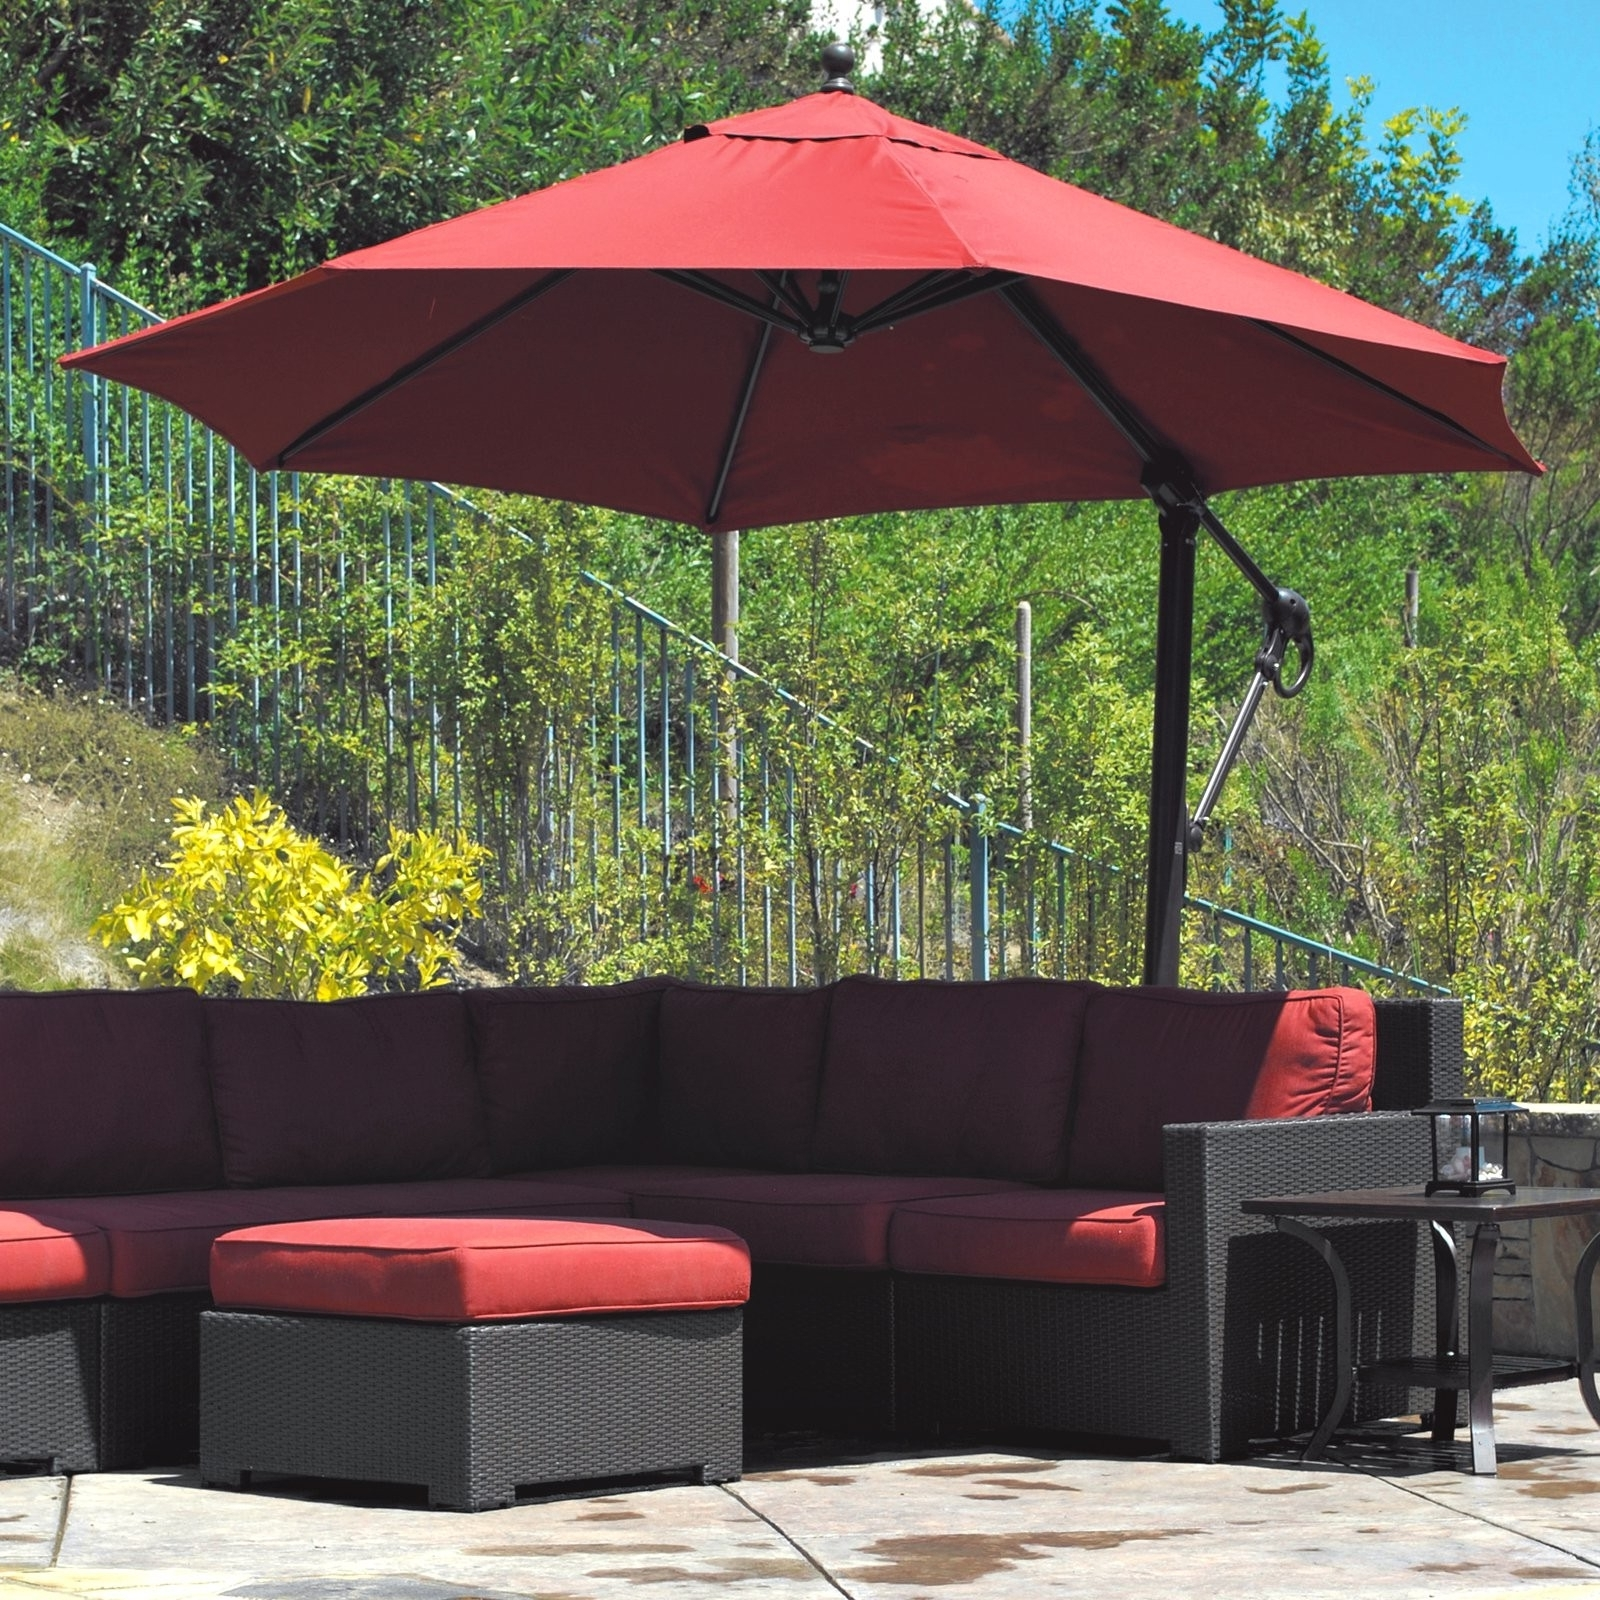 Red Sunbrella Patio Umbrellas Inside Most Recent Sunbrella Patio Umbrella Lovely Outdoor Ft Patio Umbrella Outdoor (View 7 of 20)